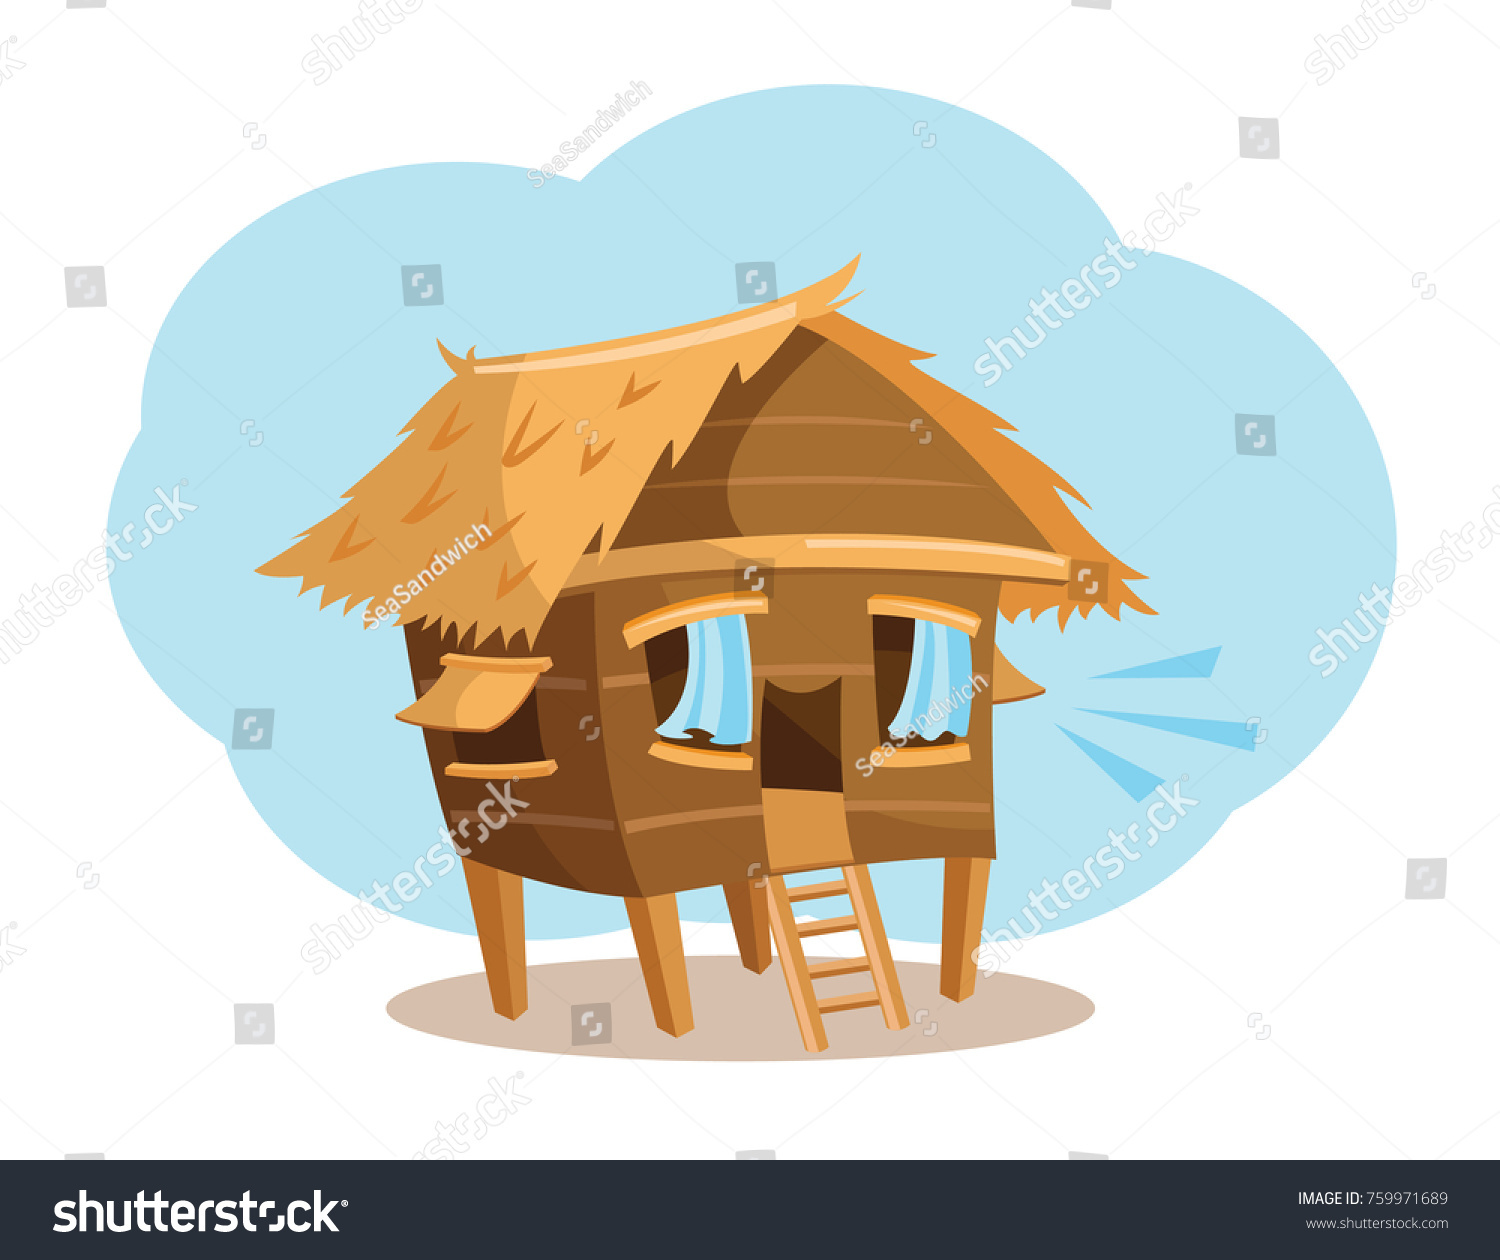 68 Best Nipa Hut images | Country homes, Home decor, Beach ...